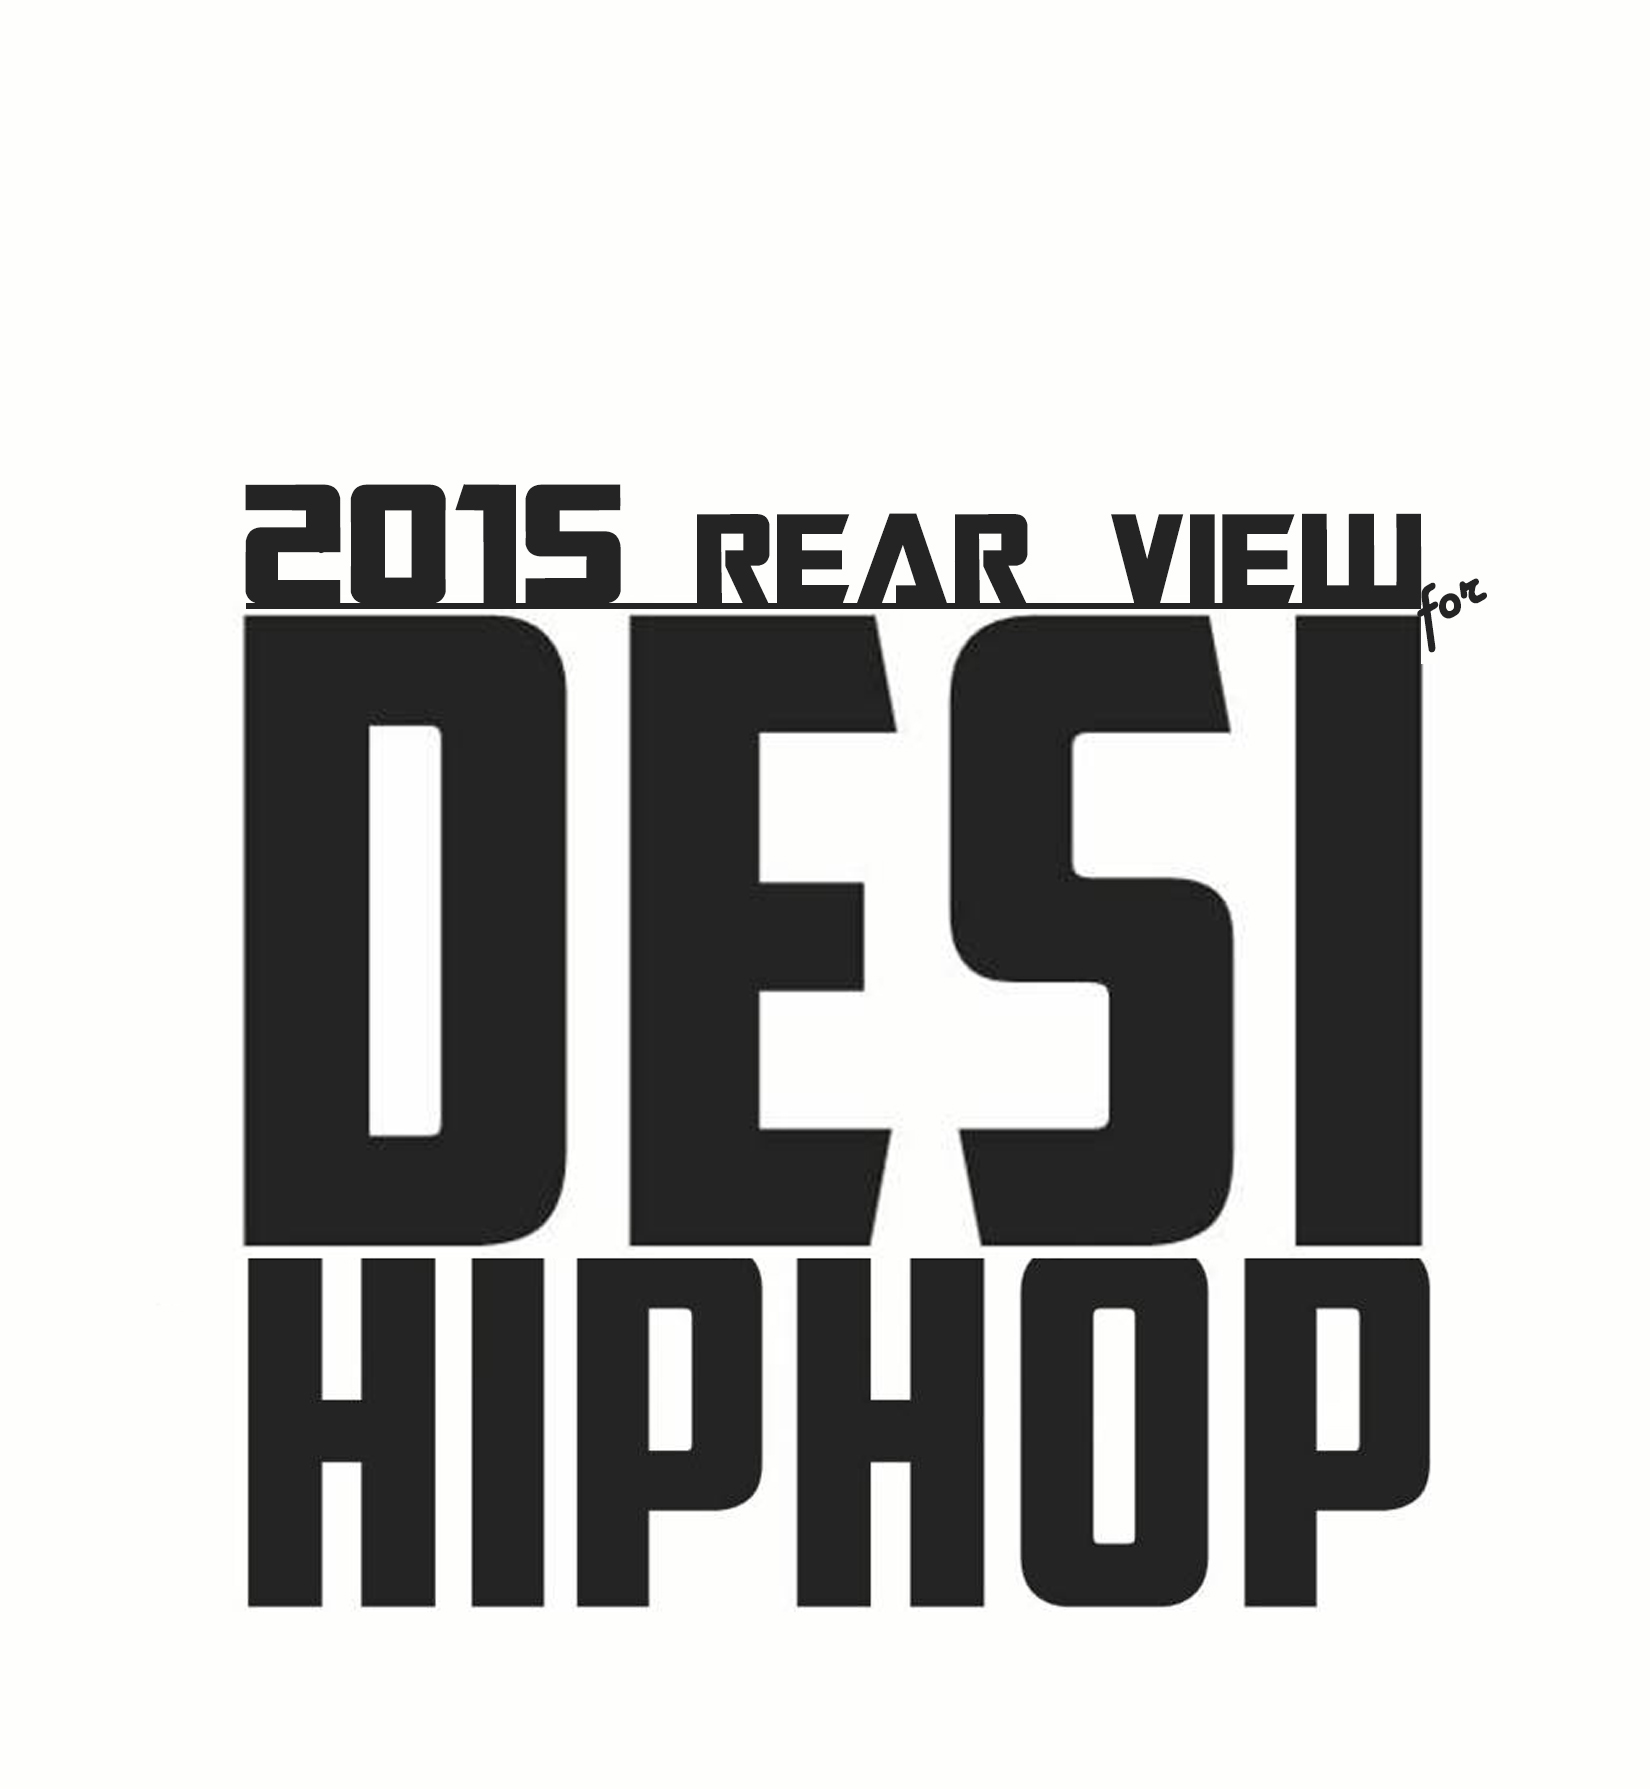 2015 in the Rear-view for Desi Hip Hop